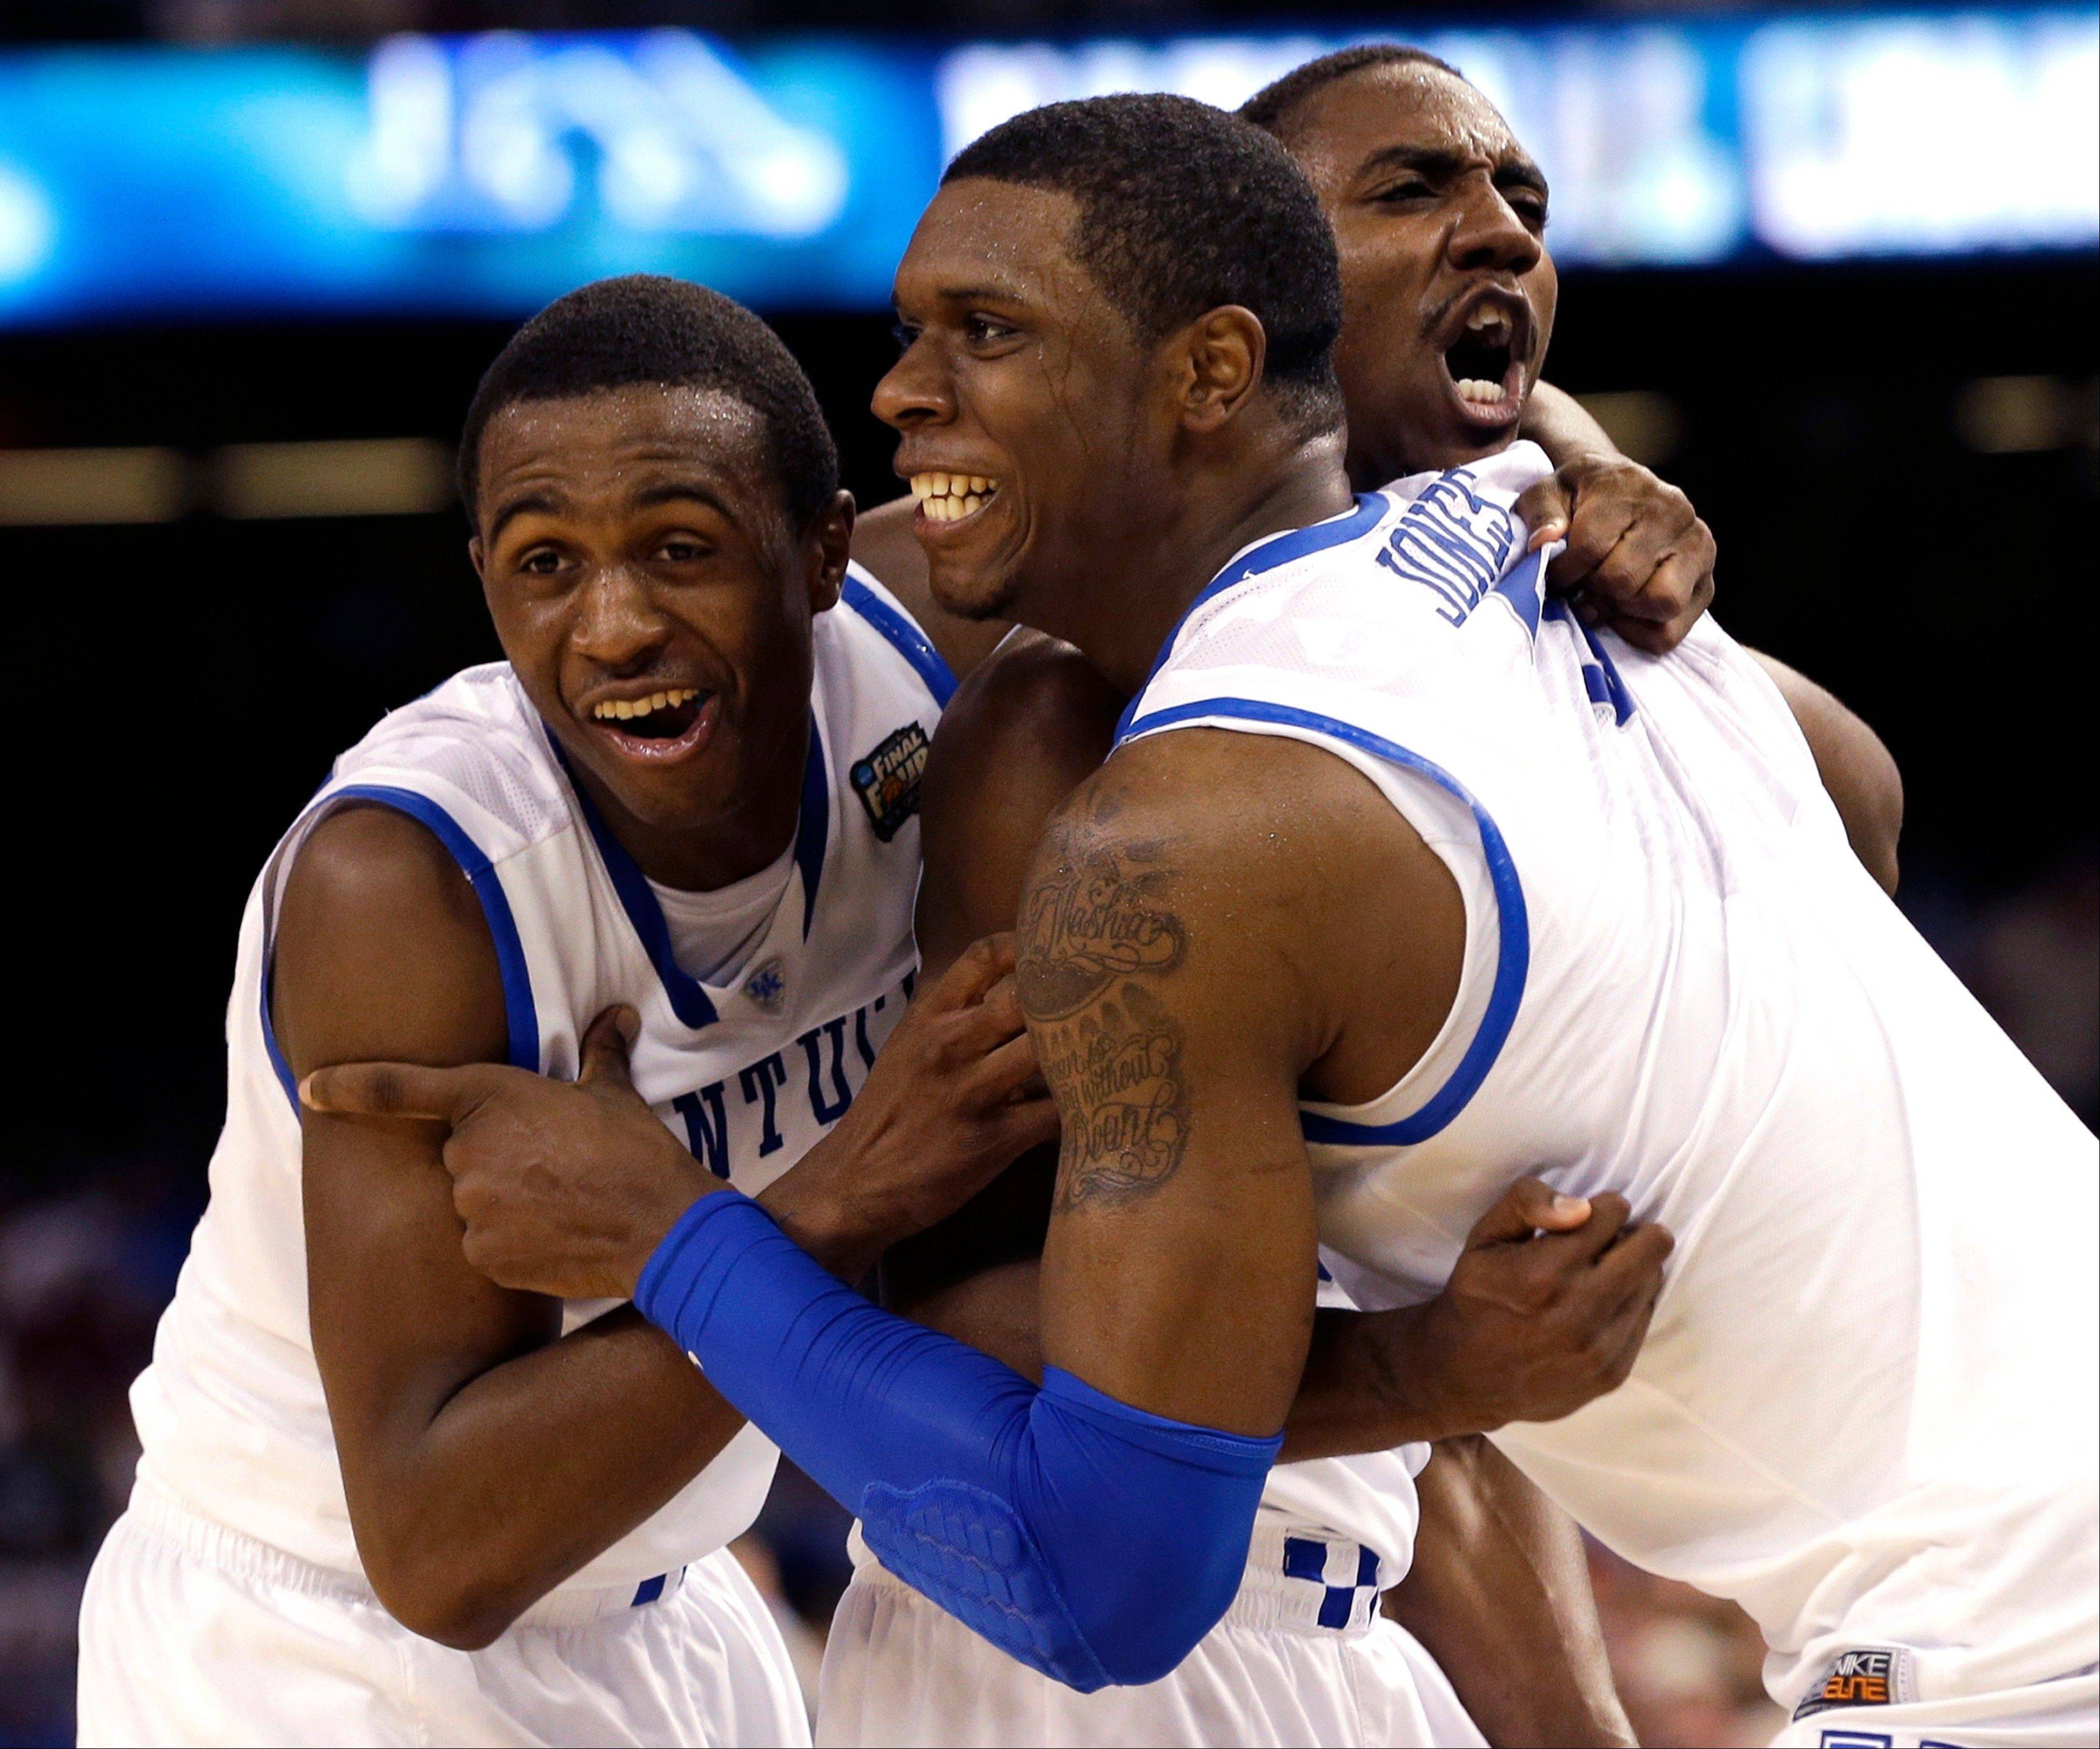 Kentucky guard Doron Lamb,left, forward Terrence Jones (3) and guard Marquis Teague celebrate after the NCAA Final Four tournament college basketball championship game Monday, April 2, 2012, in New Orleans.